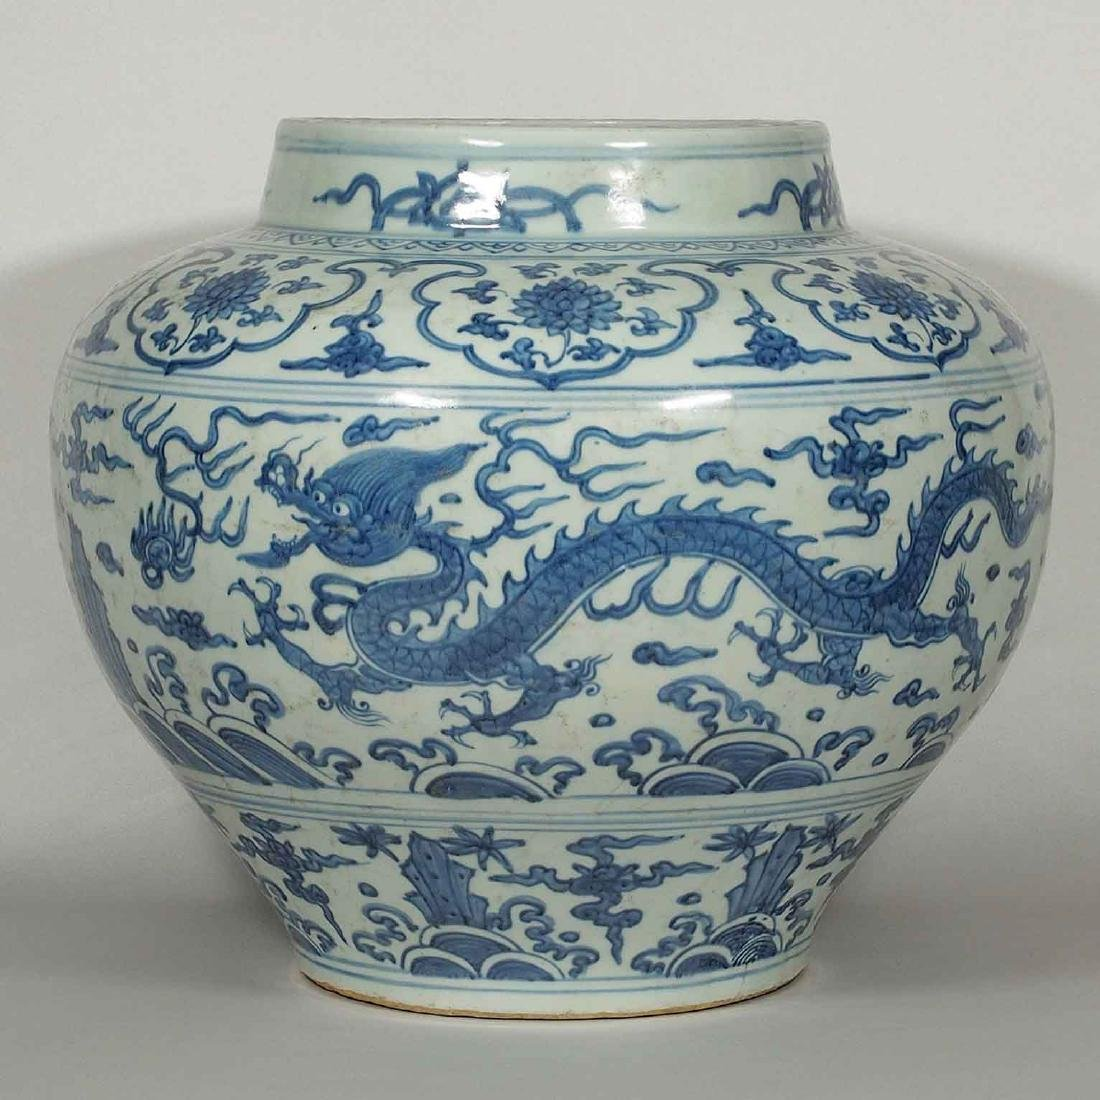 Massive Jar with Two Dragons Design, 15th Century Ming - 3